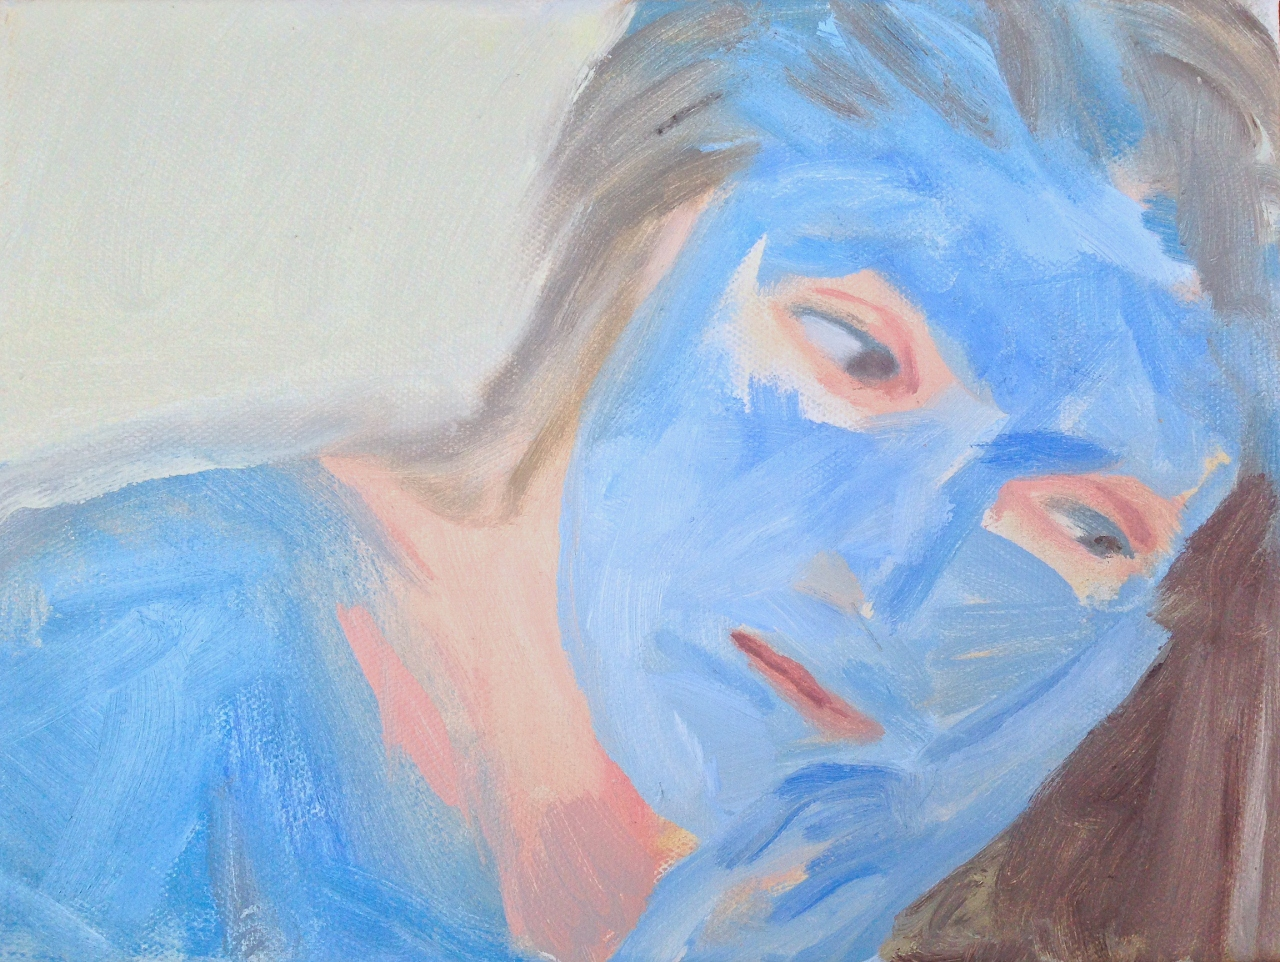 BLUE, 2014 / oil on canvas / 18 x 24 cm